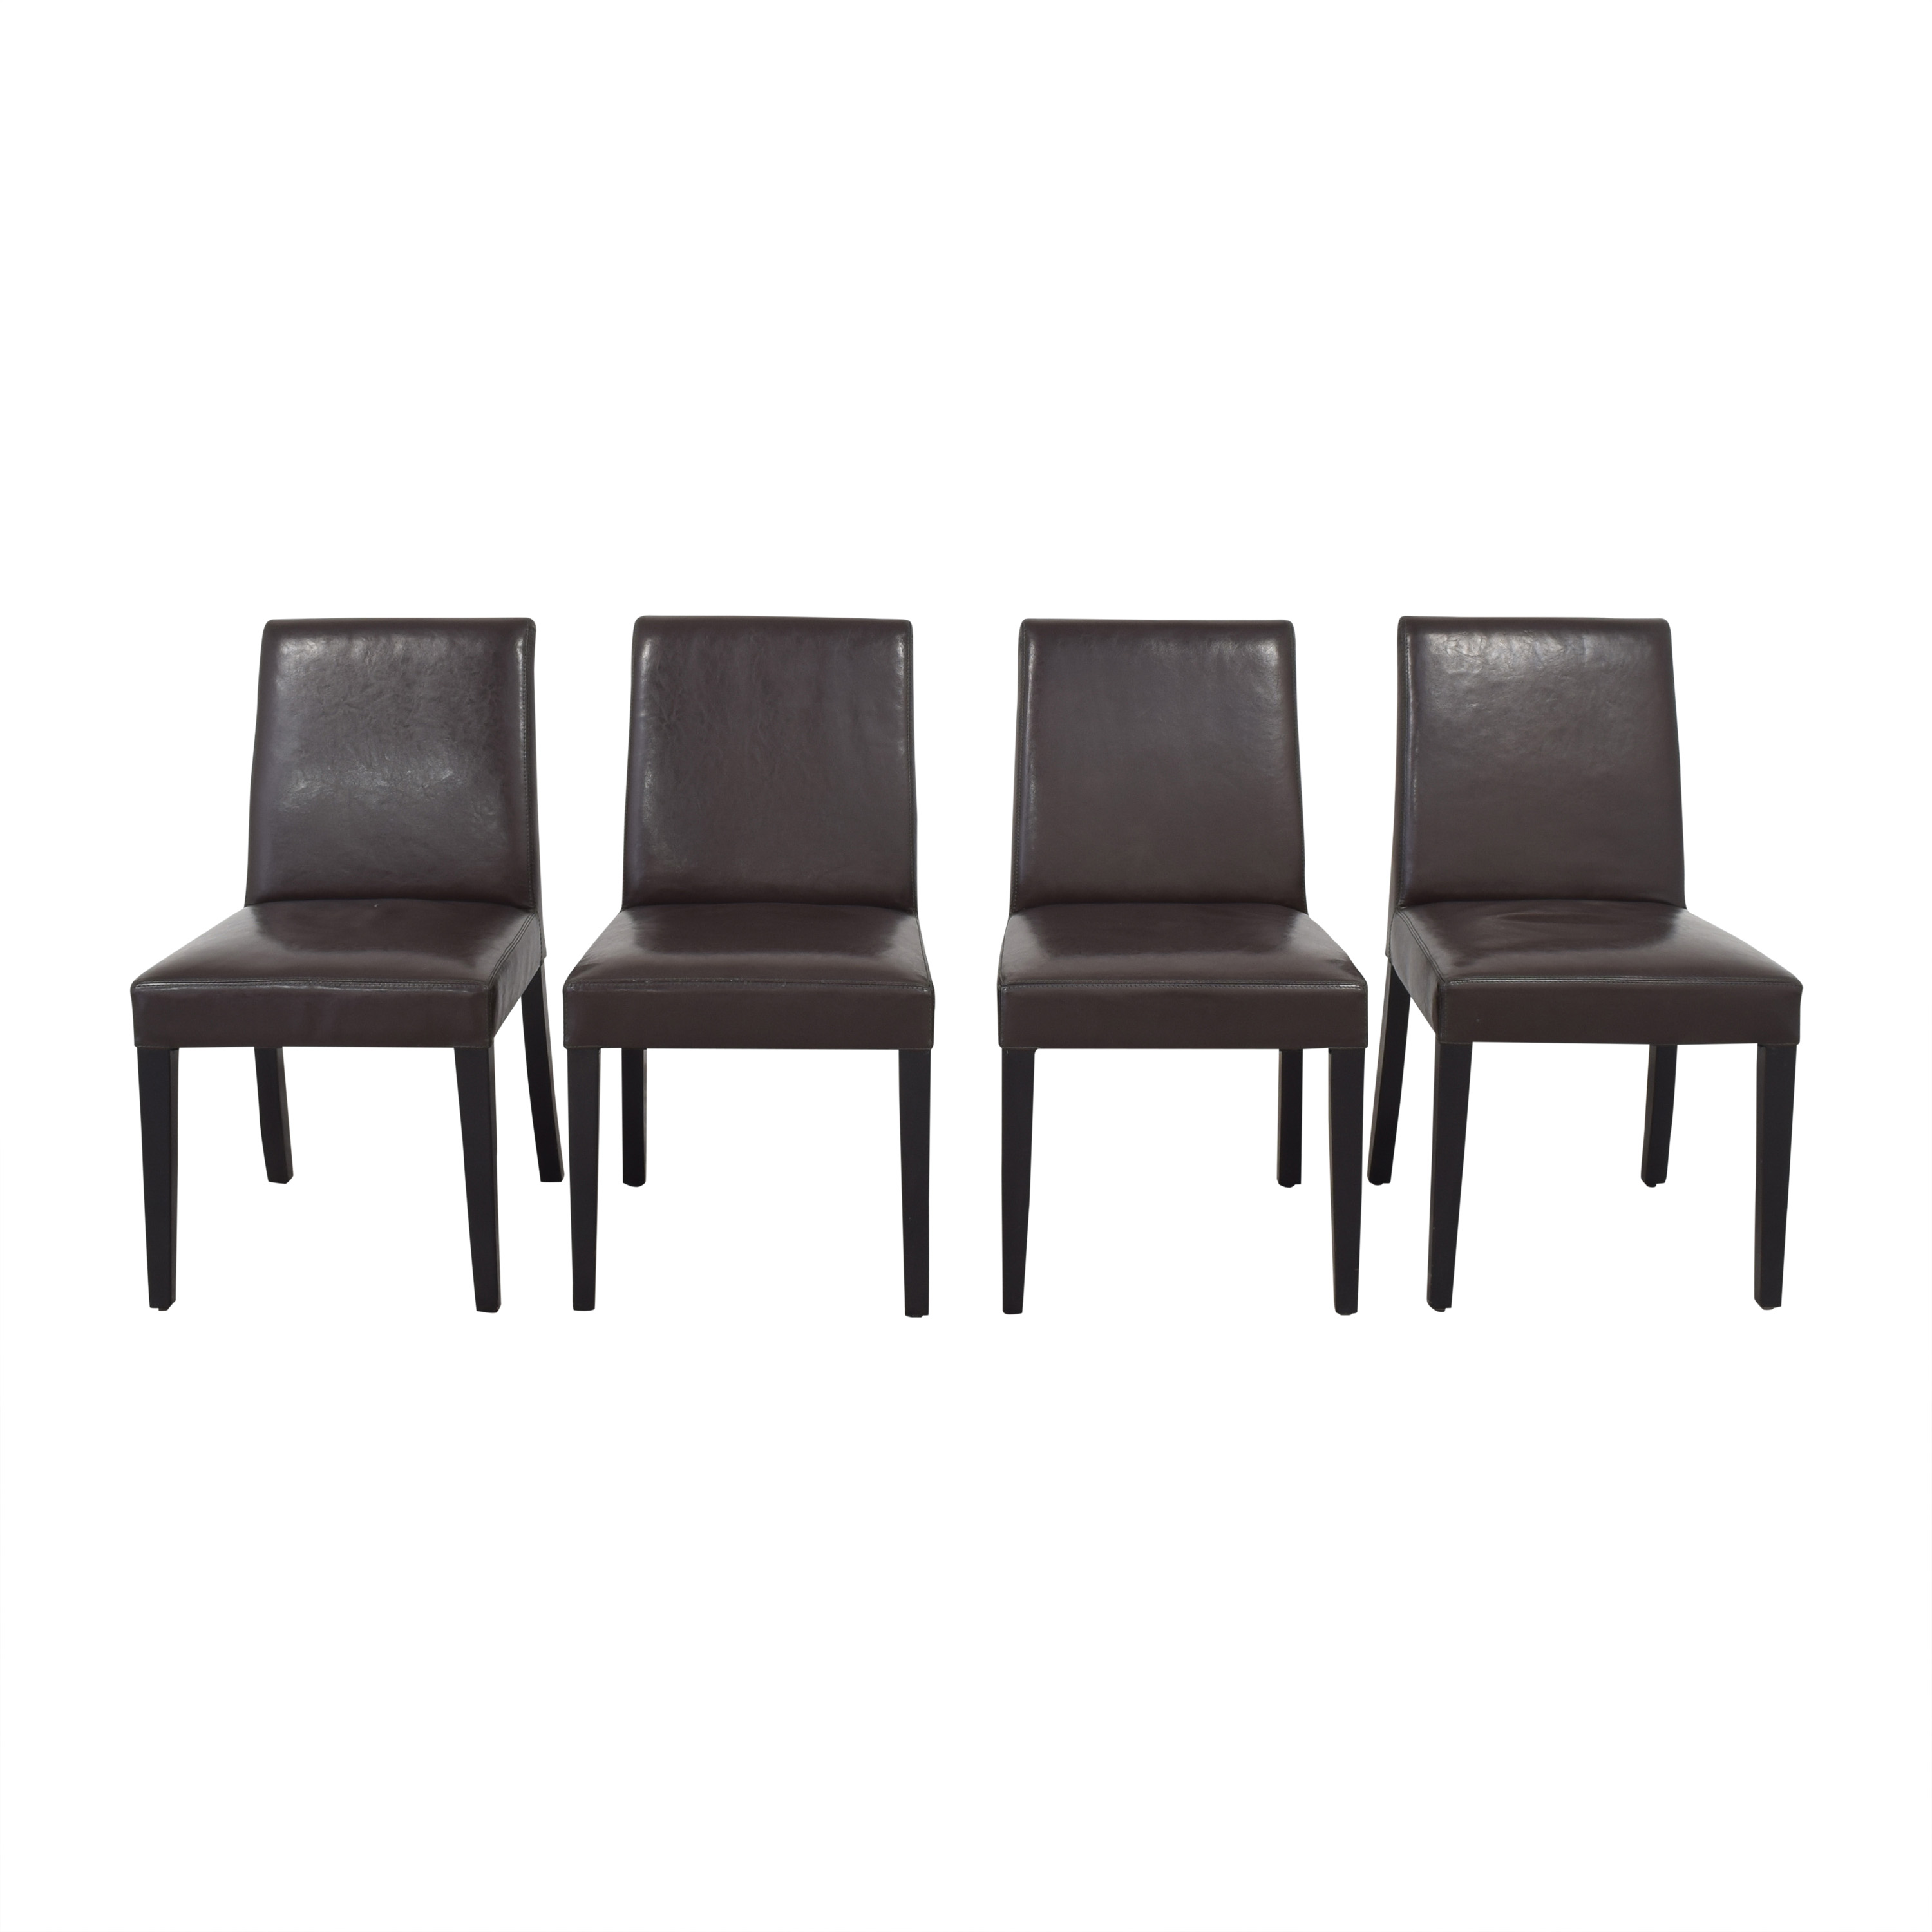 Crate & Barrel Crate & Barrel Pullman Side Chairs Chairs